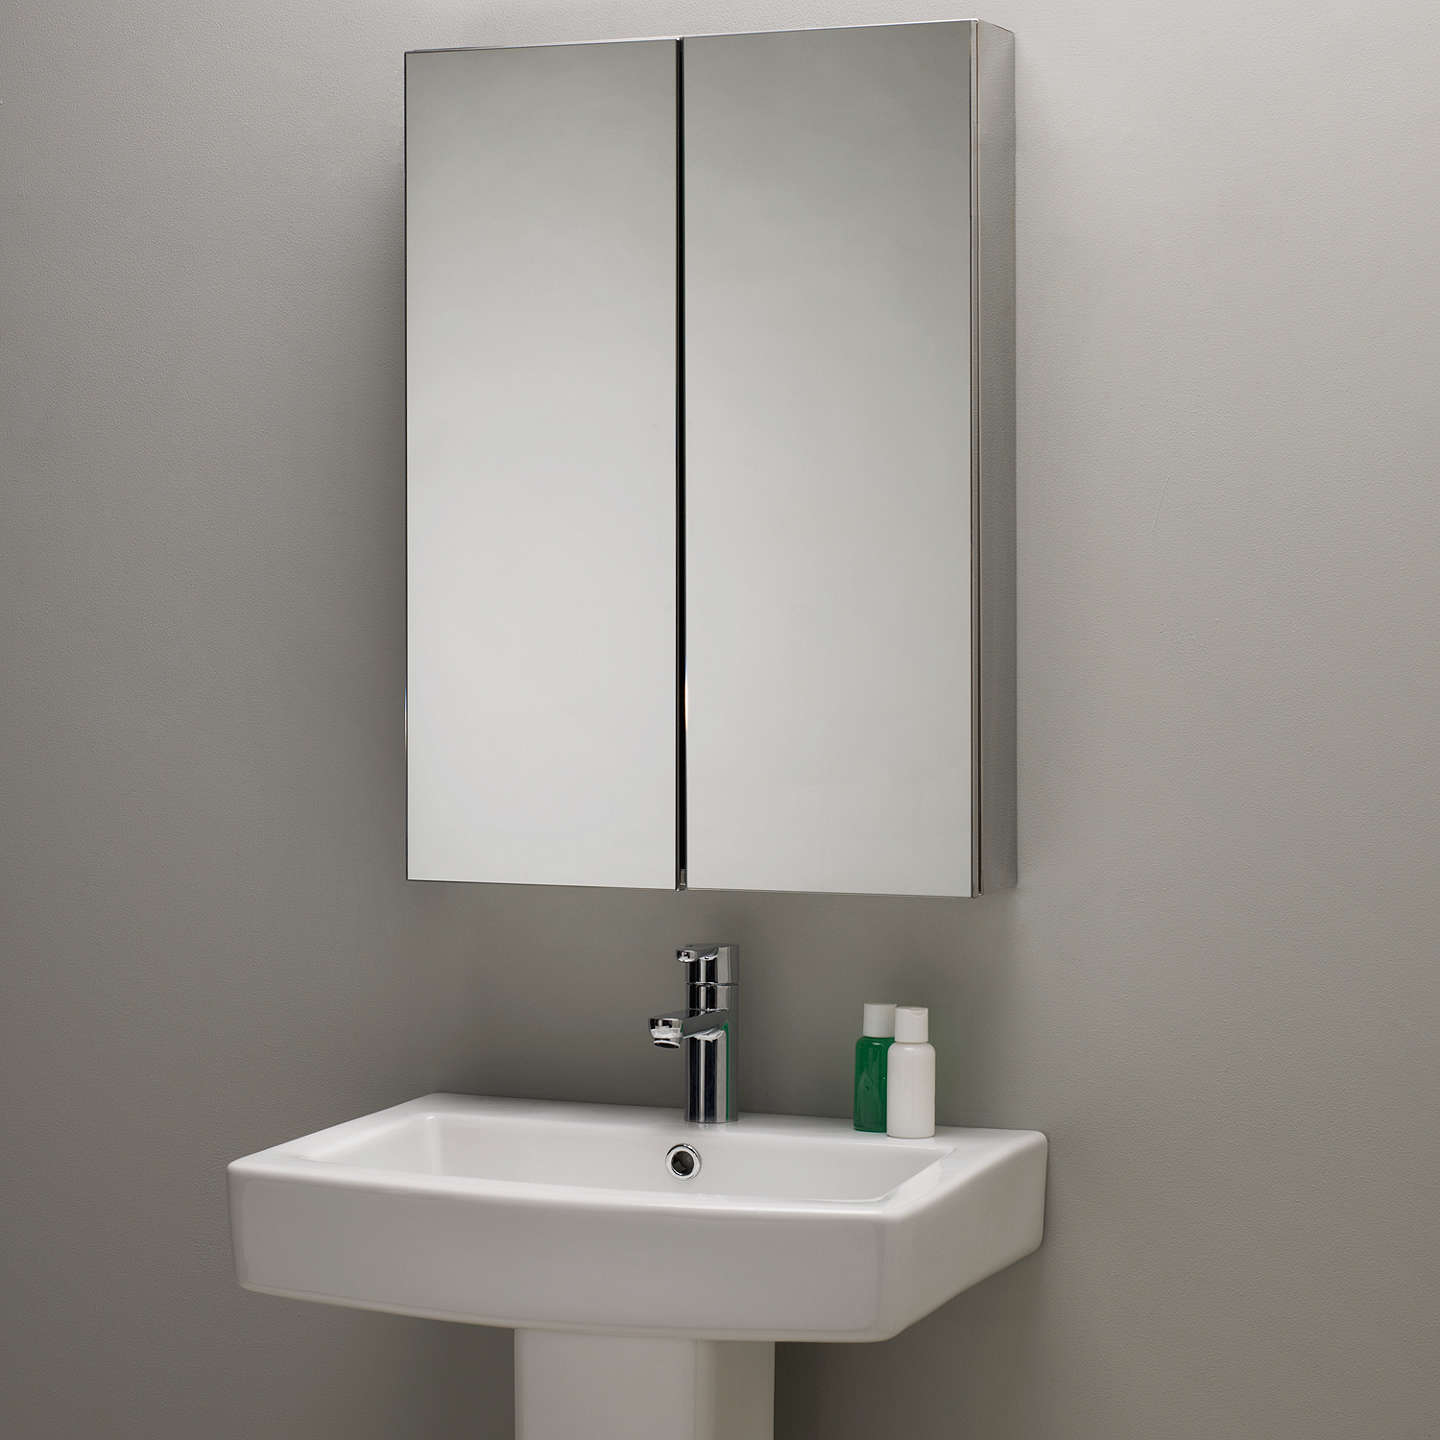 Roper Rhodes Shine Double Mirrored Bathroom Cabinet At John Lewis